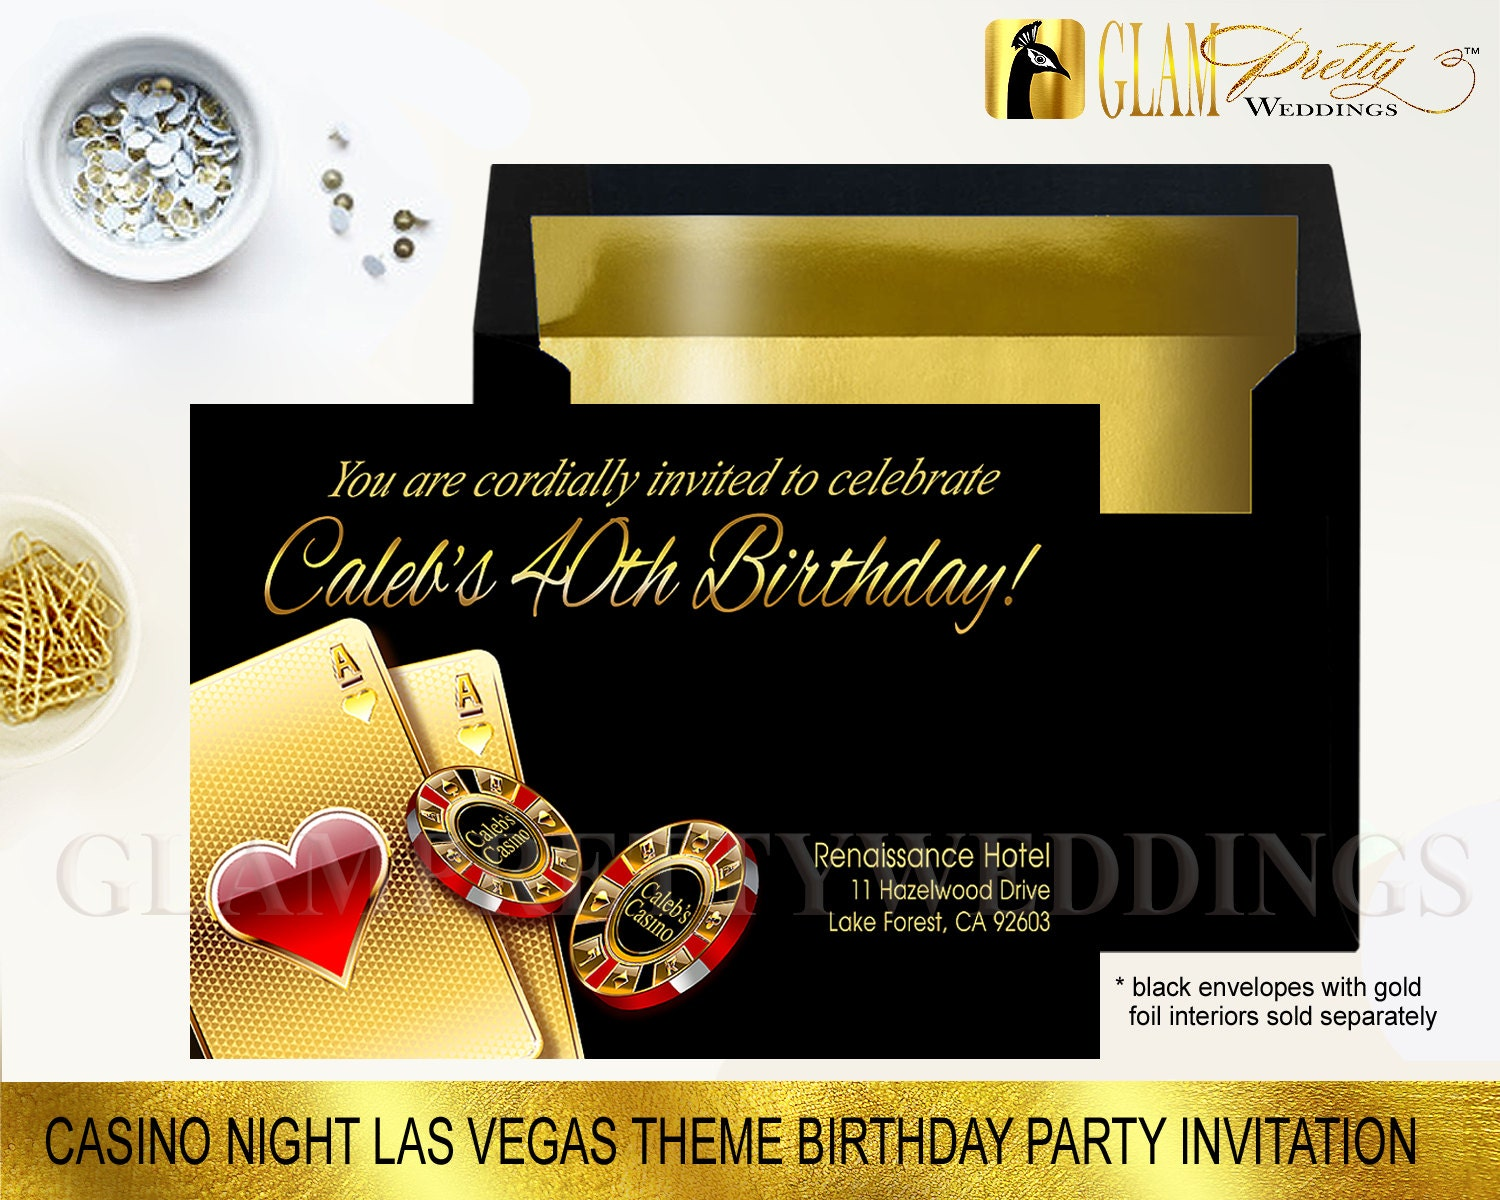 Las Vegas Theme Birthday Party Invitation Your Name in Casino